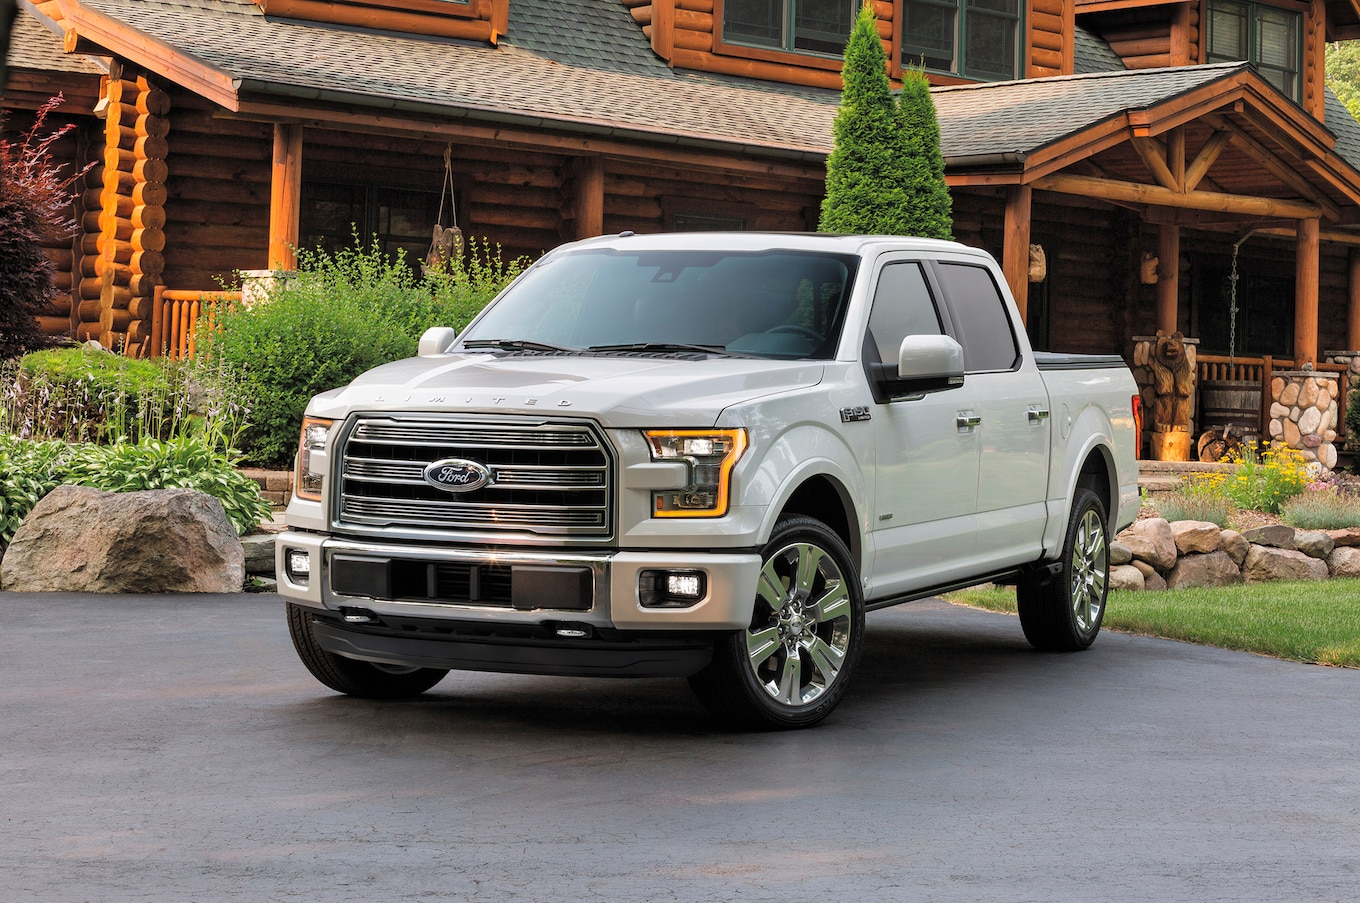 small resolution of 2016 ford f 150 reviews research f 150 prices specs motortrend ford f150 front suspension diagram by admin on may 20 2015 ford f150